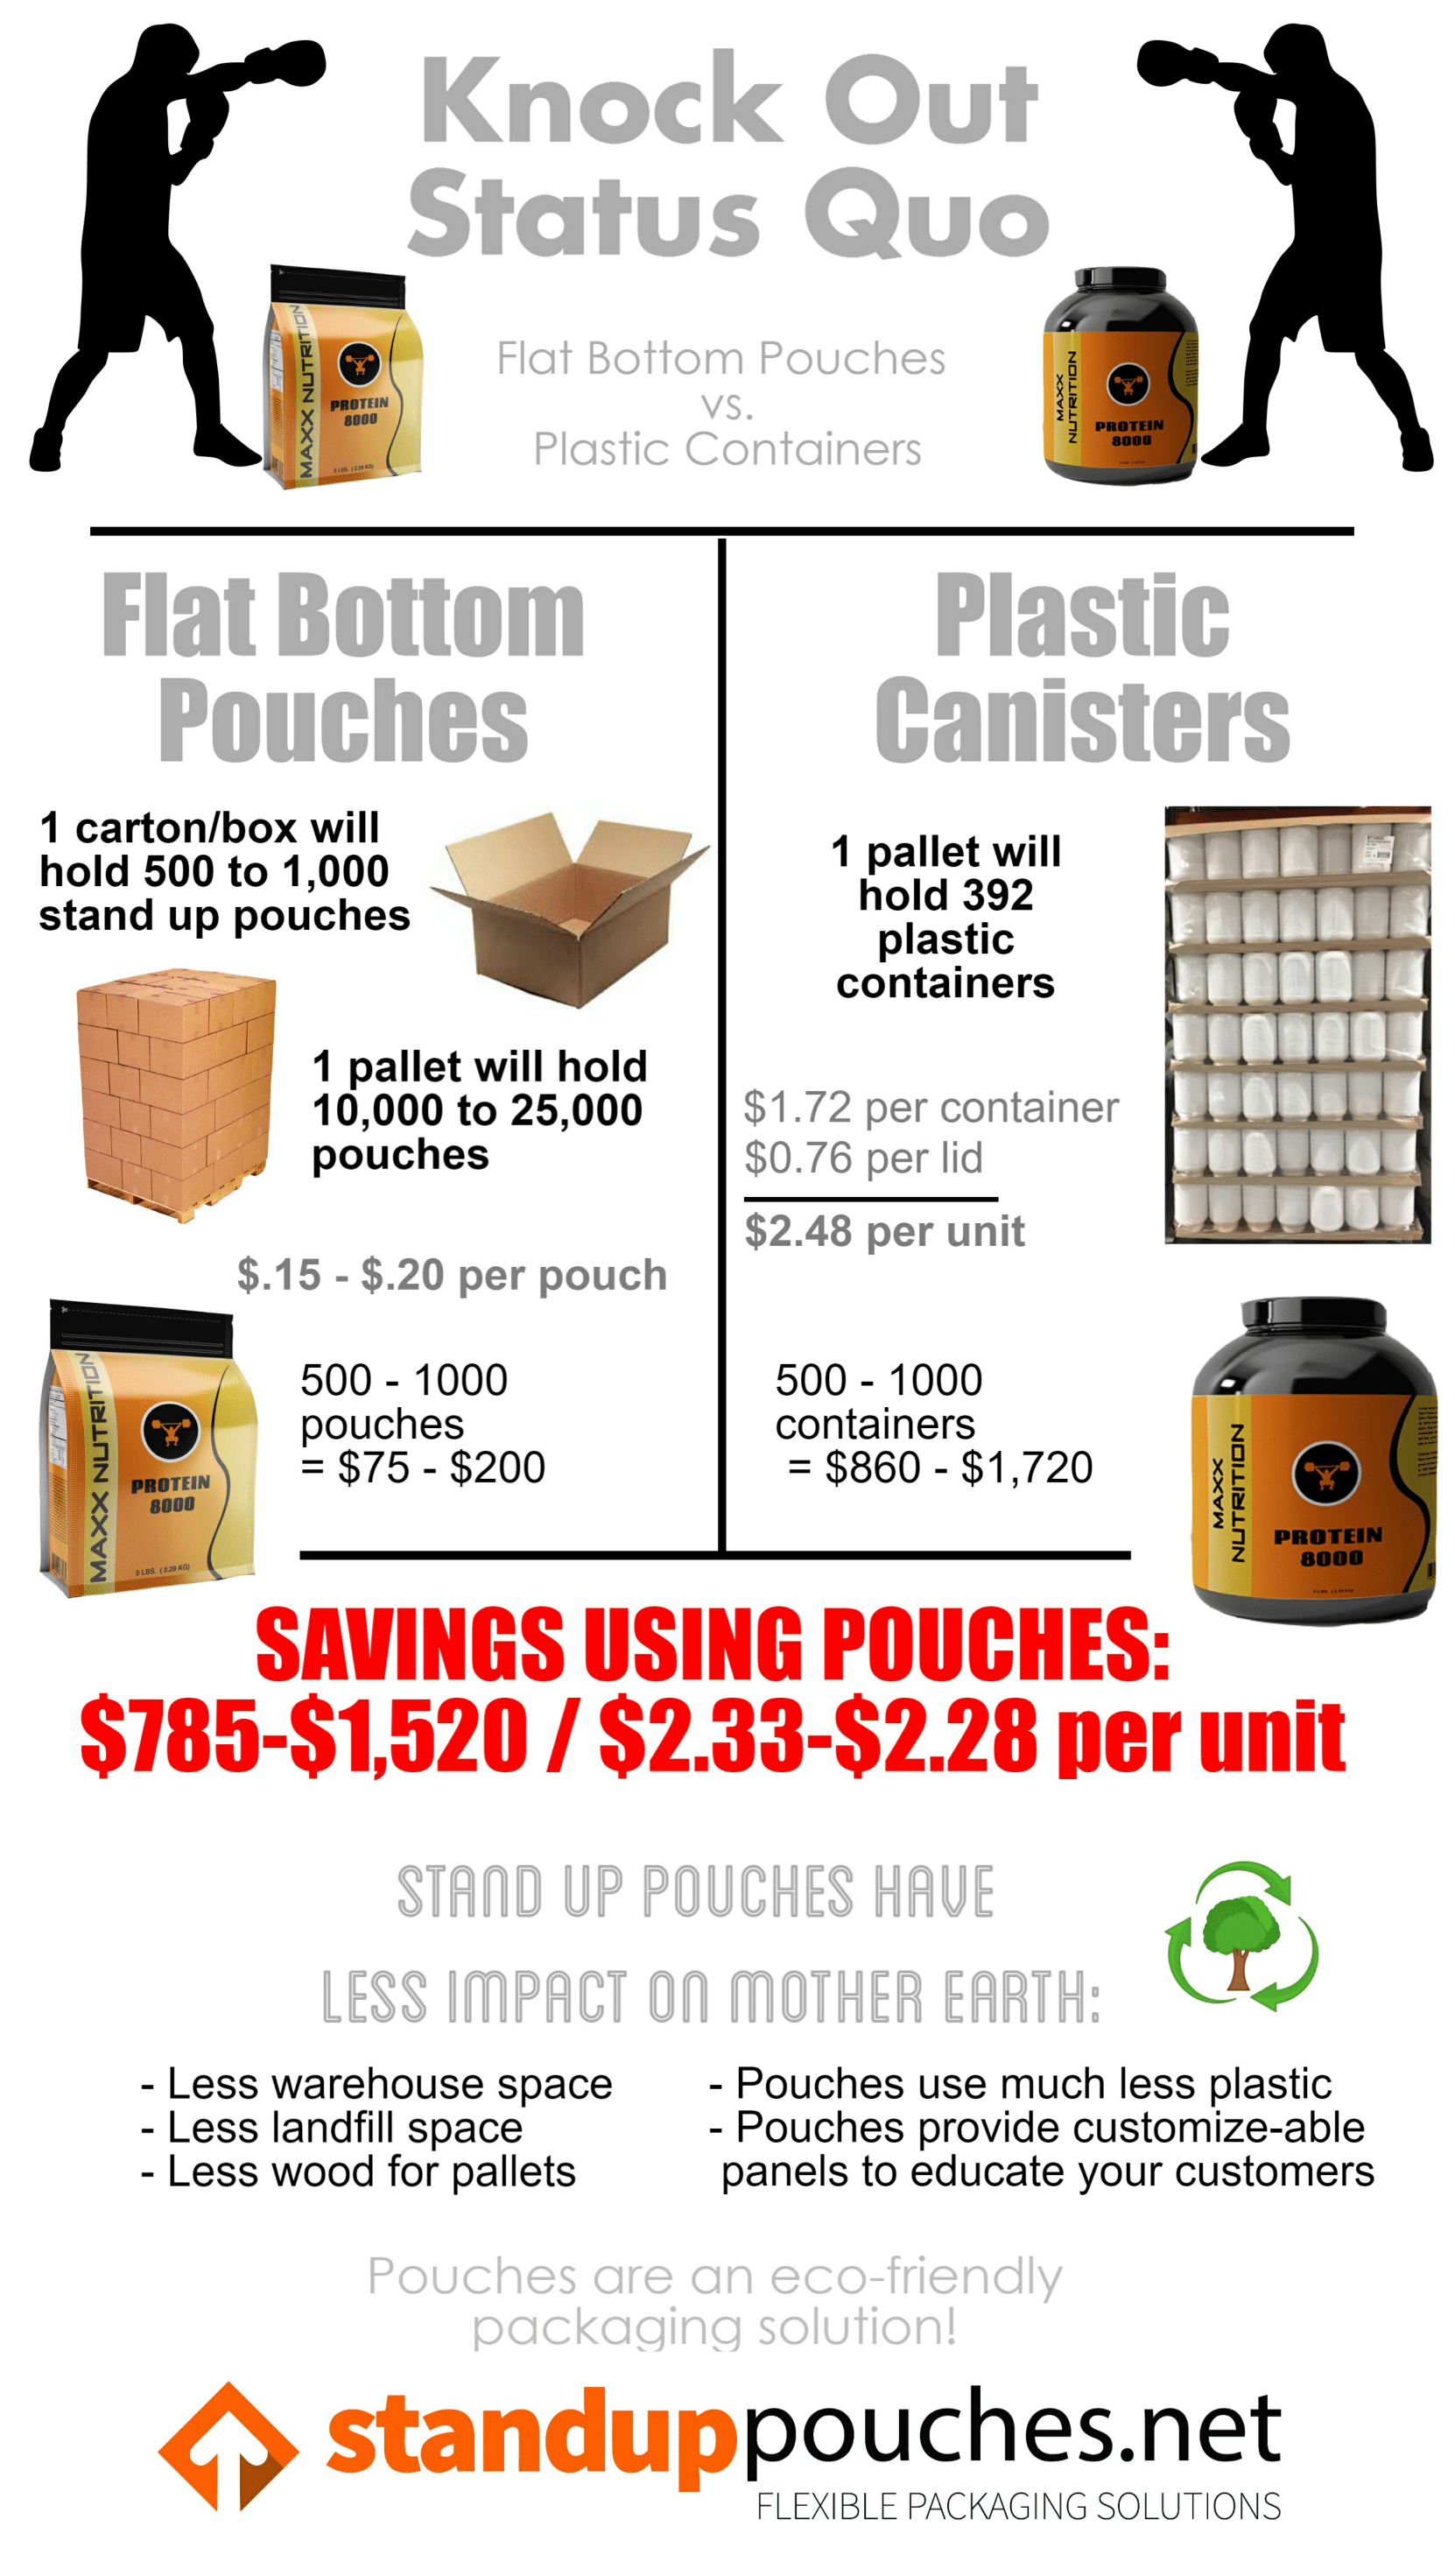 ProteinPowderInfographic.png